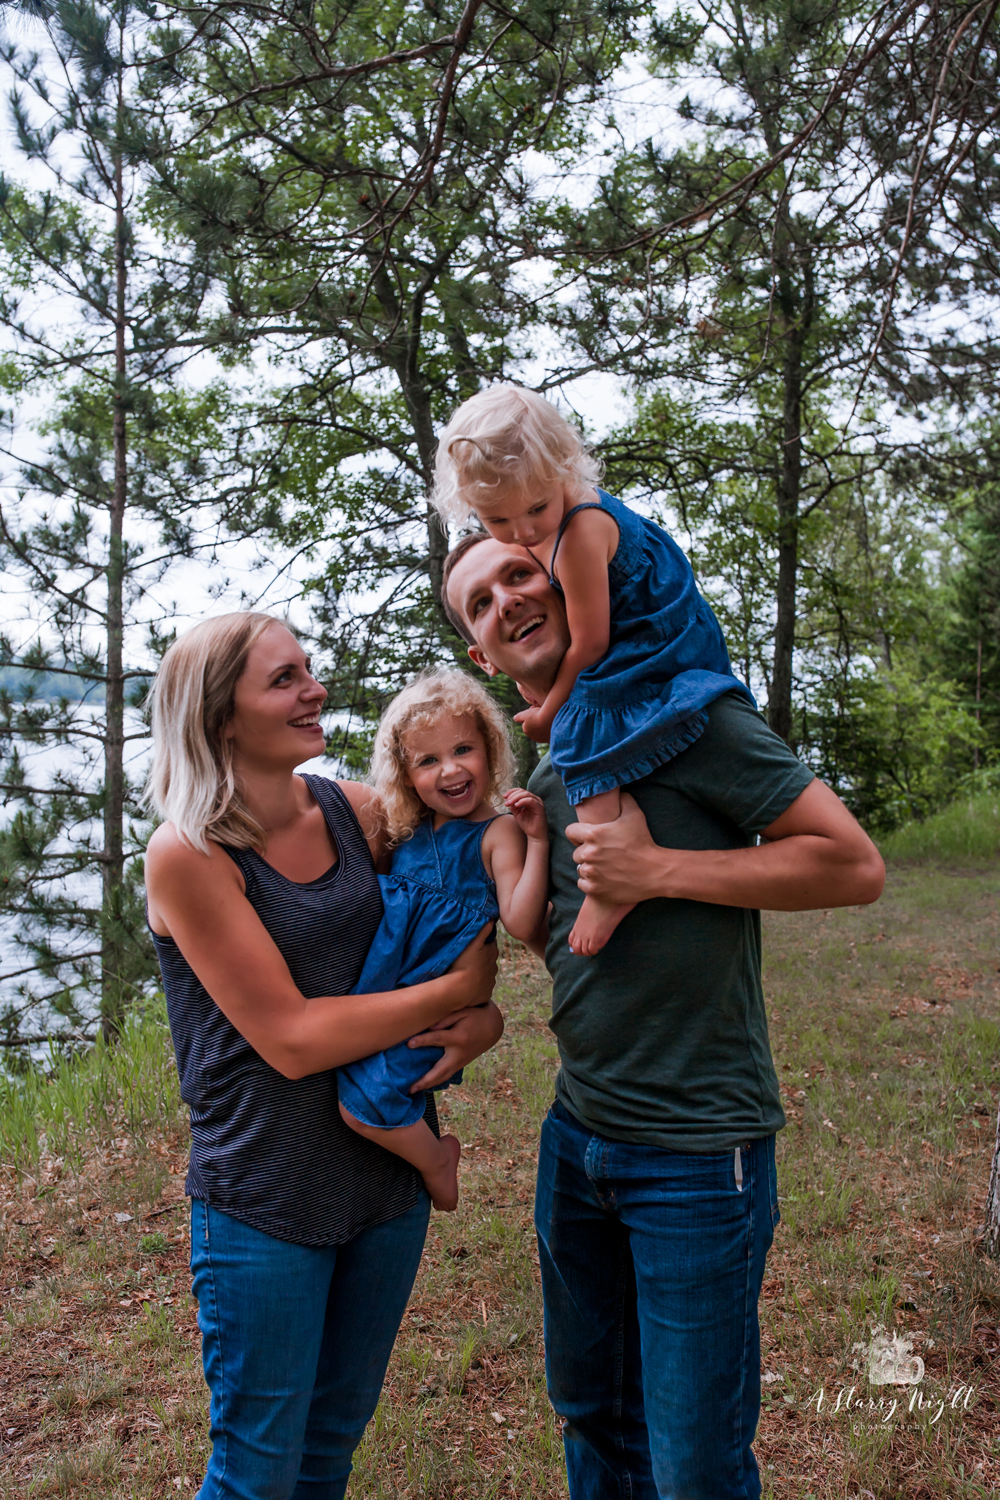 Mom and Dad with their two girls in the pines at Alcona State Park Campground.